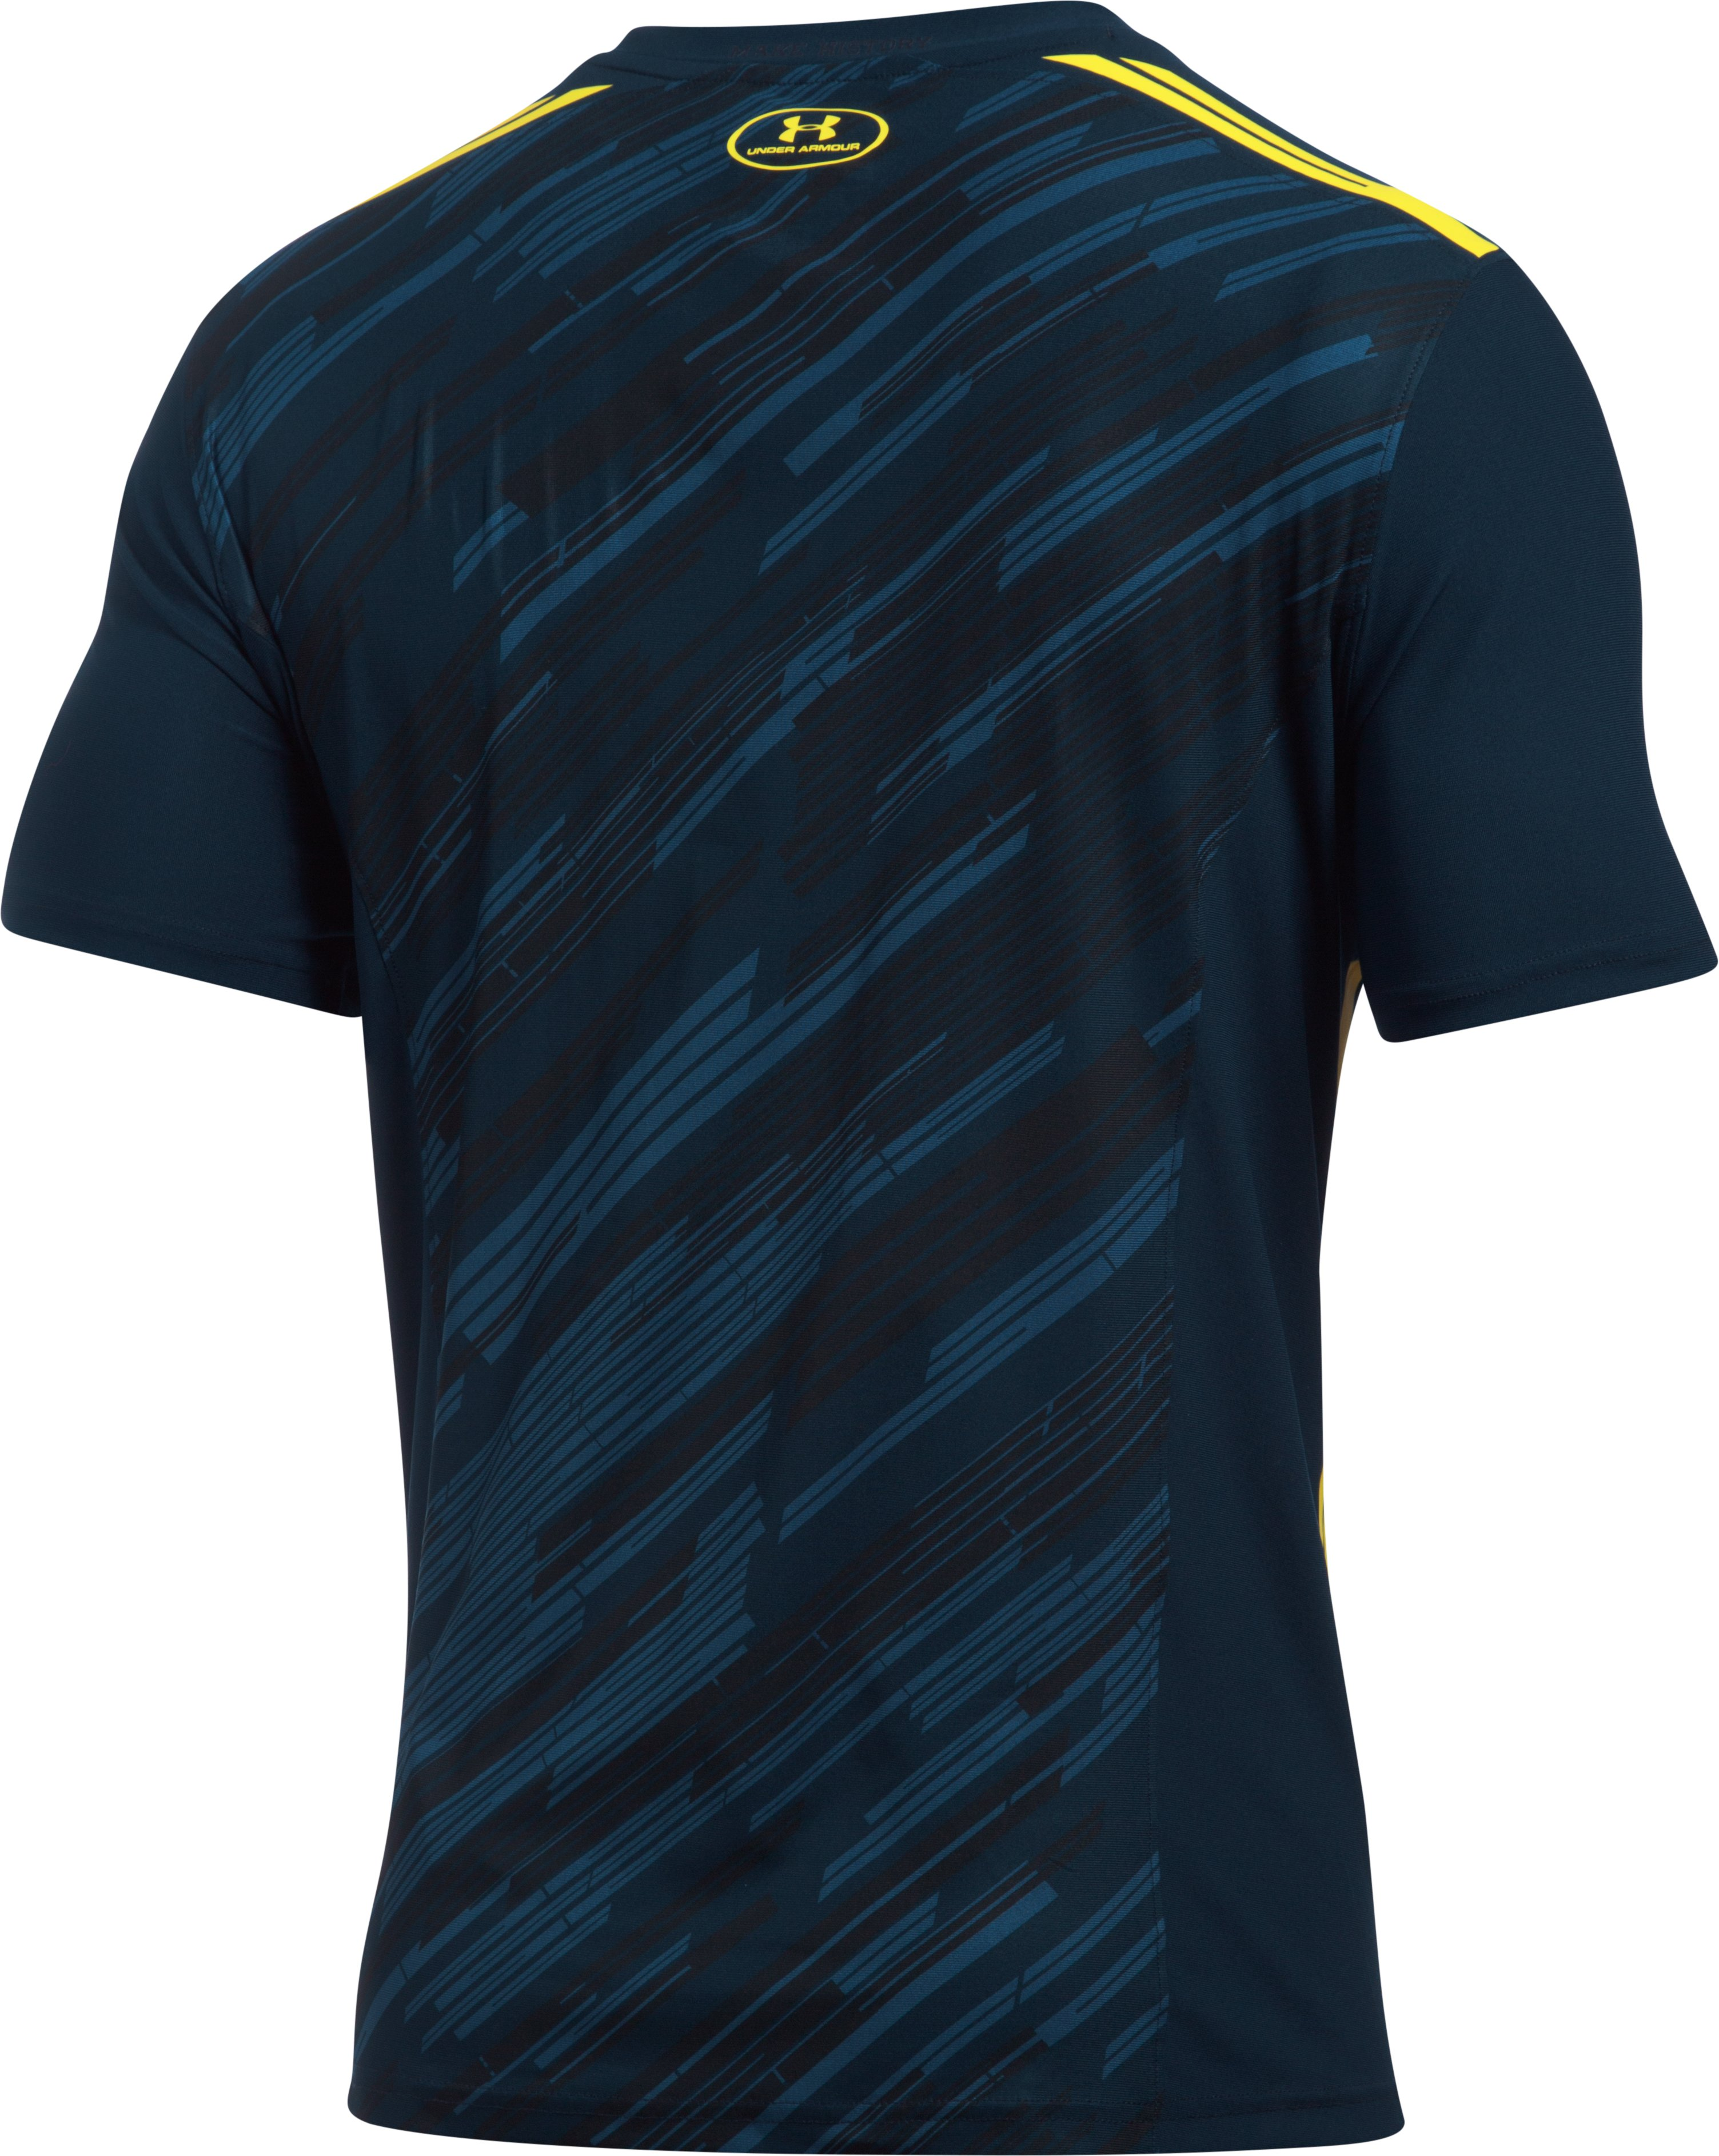 Men's NFL Combine Authentic Short Sleeve T-Shirt, Cadet,